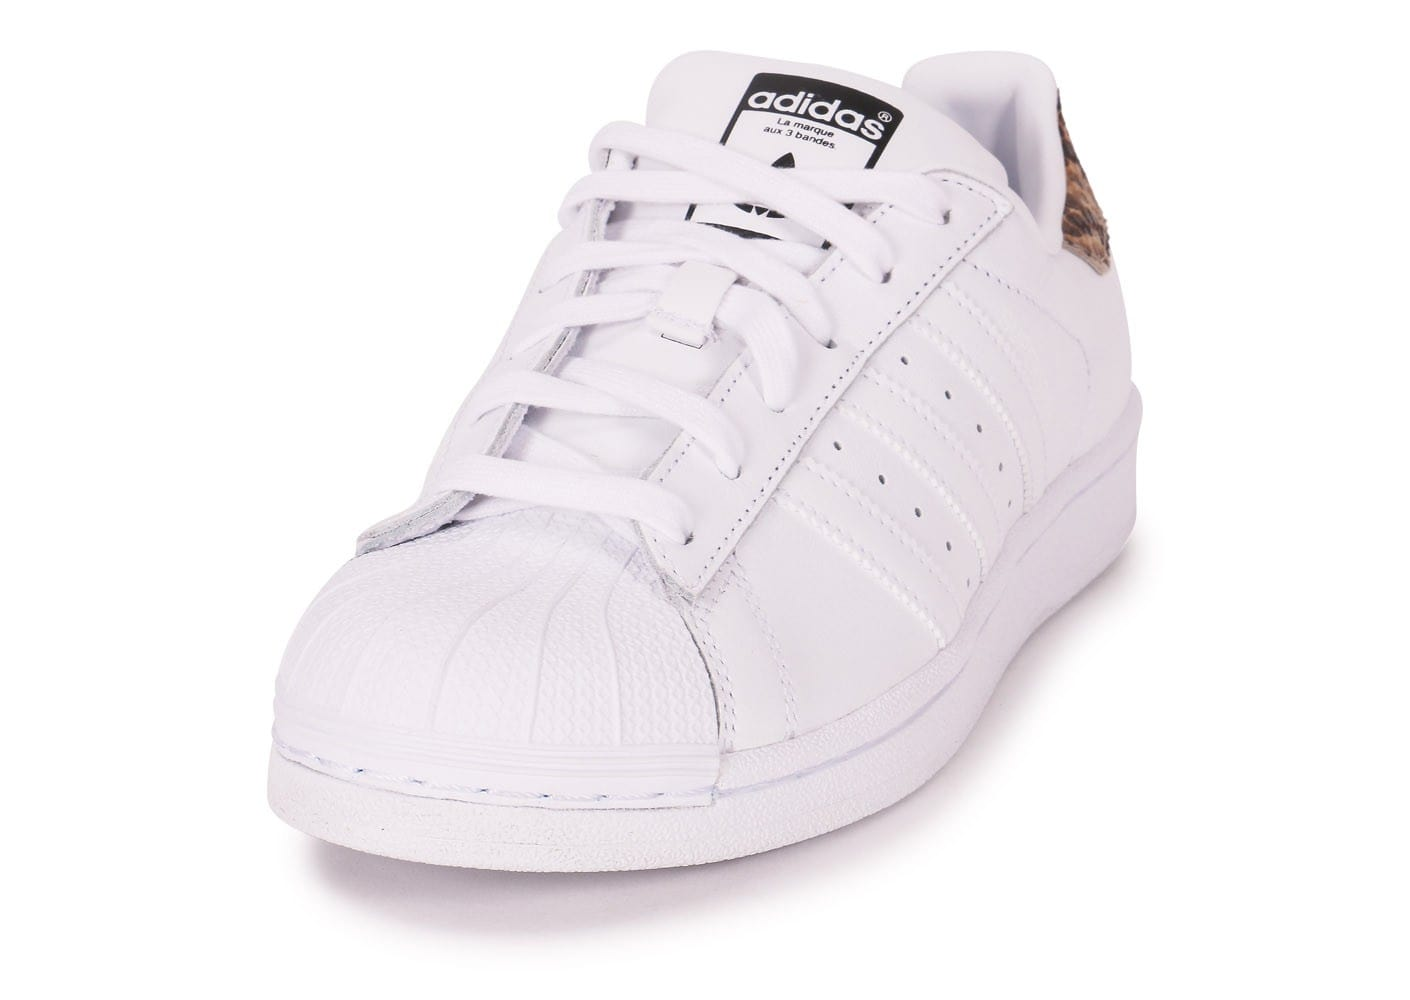 adidas Superstar Blanc Reptile Chaussures adidas Chausport